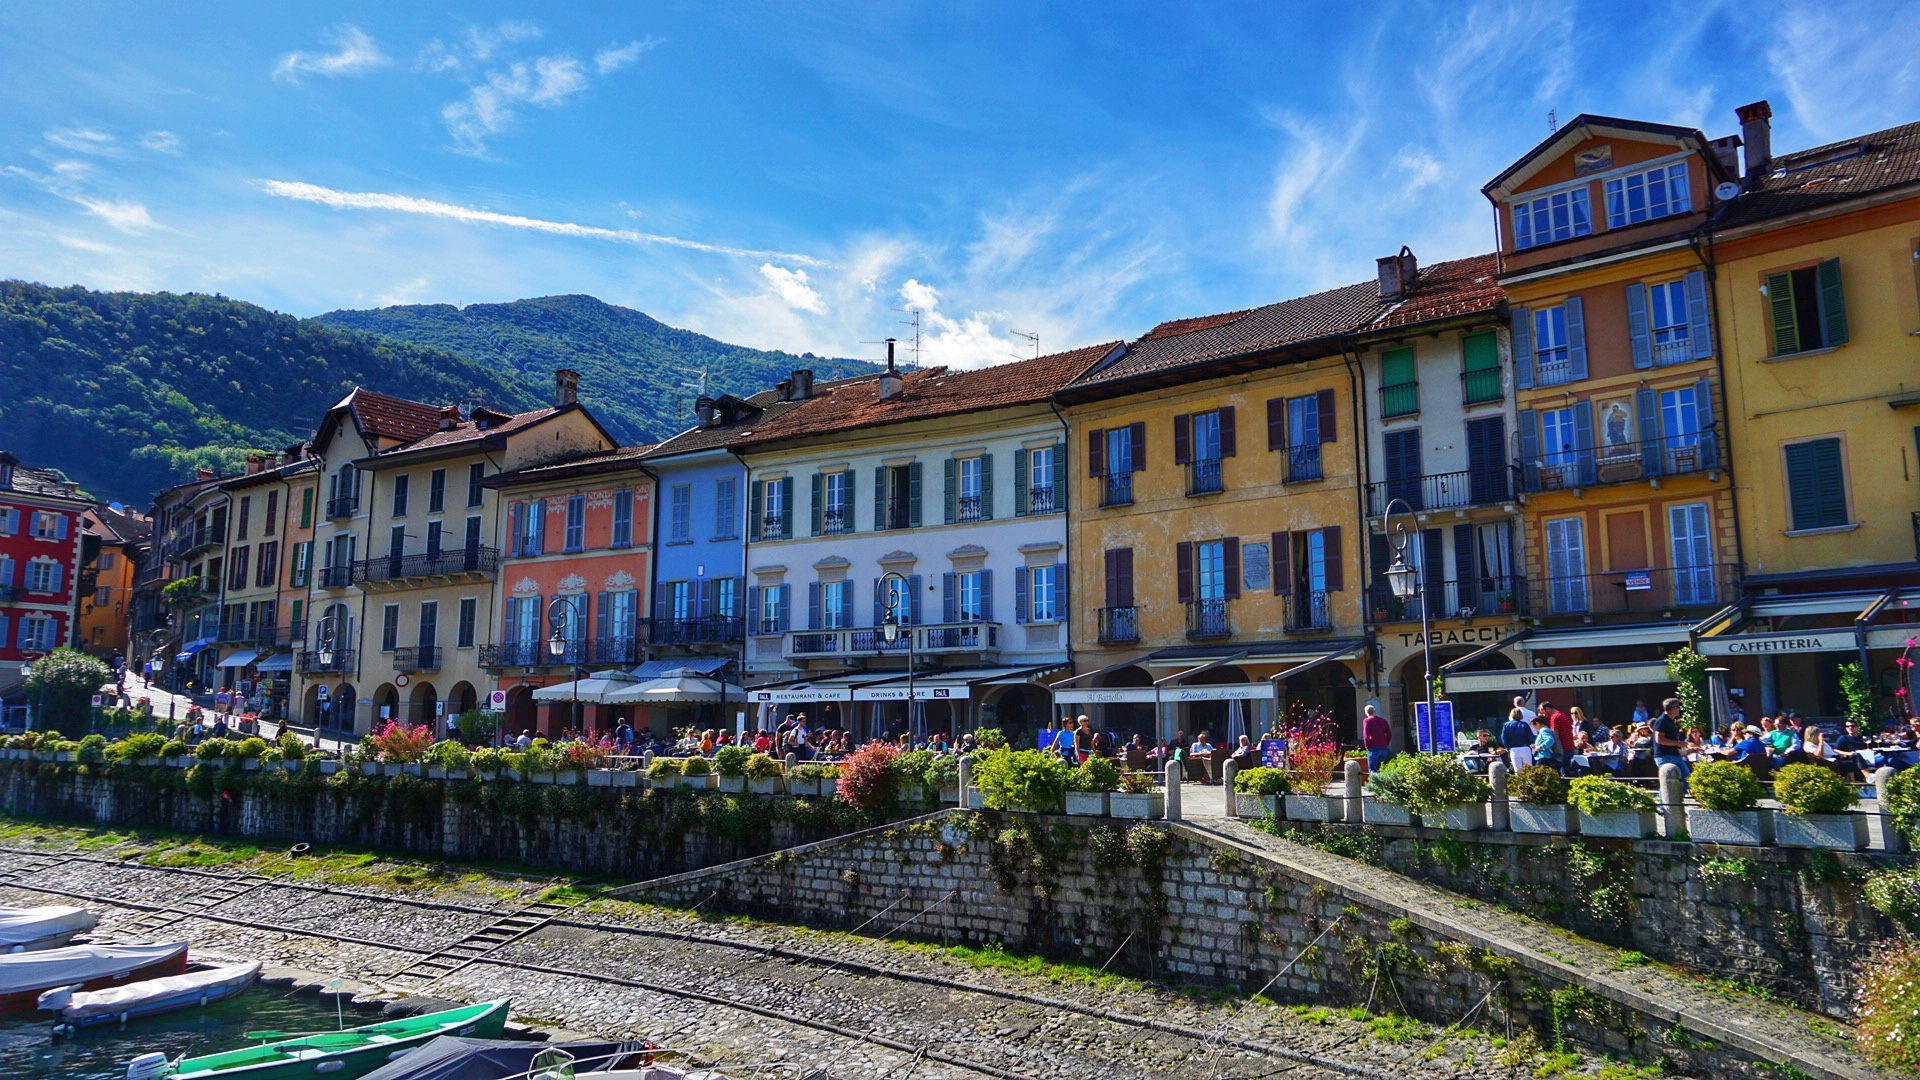 Most beautiful town on Lake Maggiore